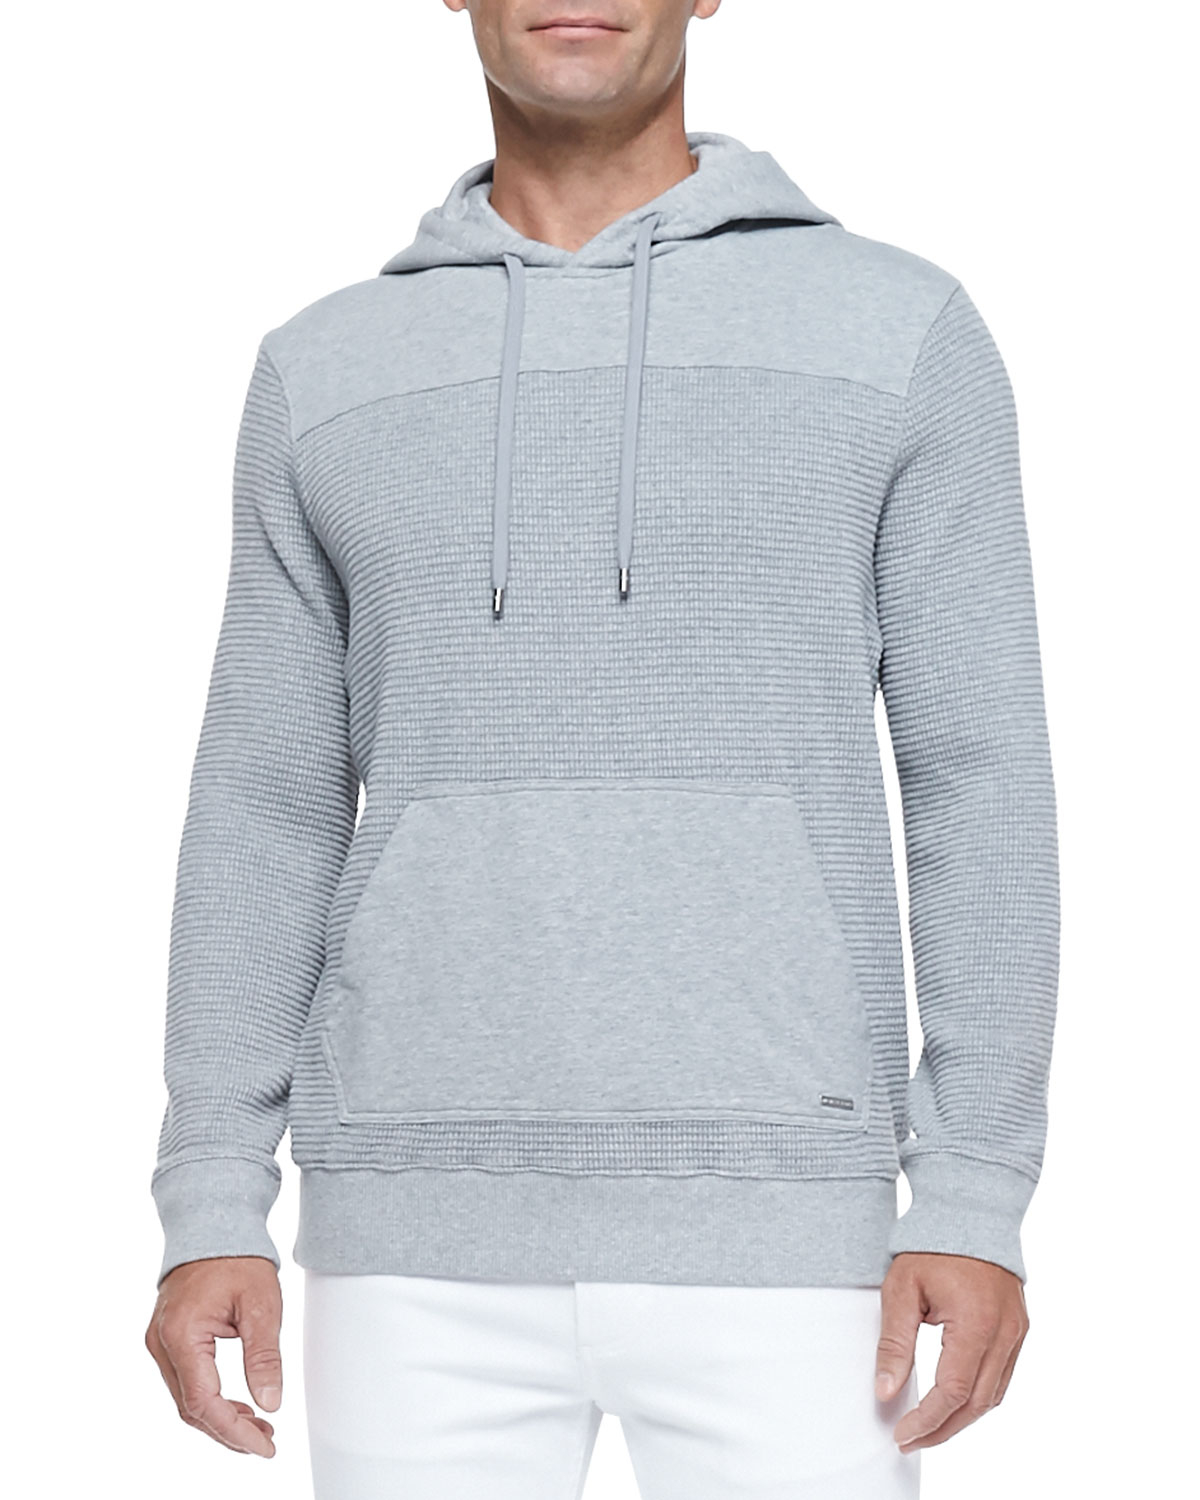 michael kors waffle knit pullover hoodie in gray for men lyst. Black Bedroom Furniture Sets. Home Design Ideas